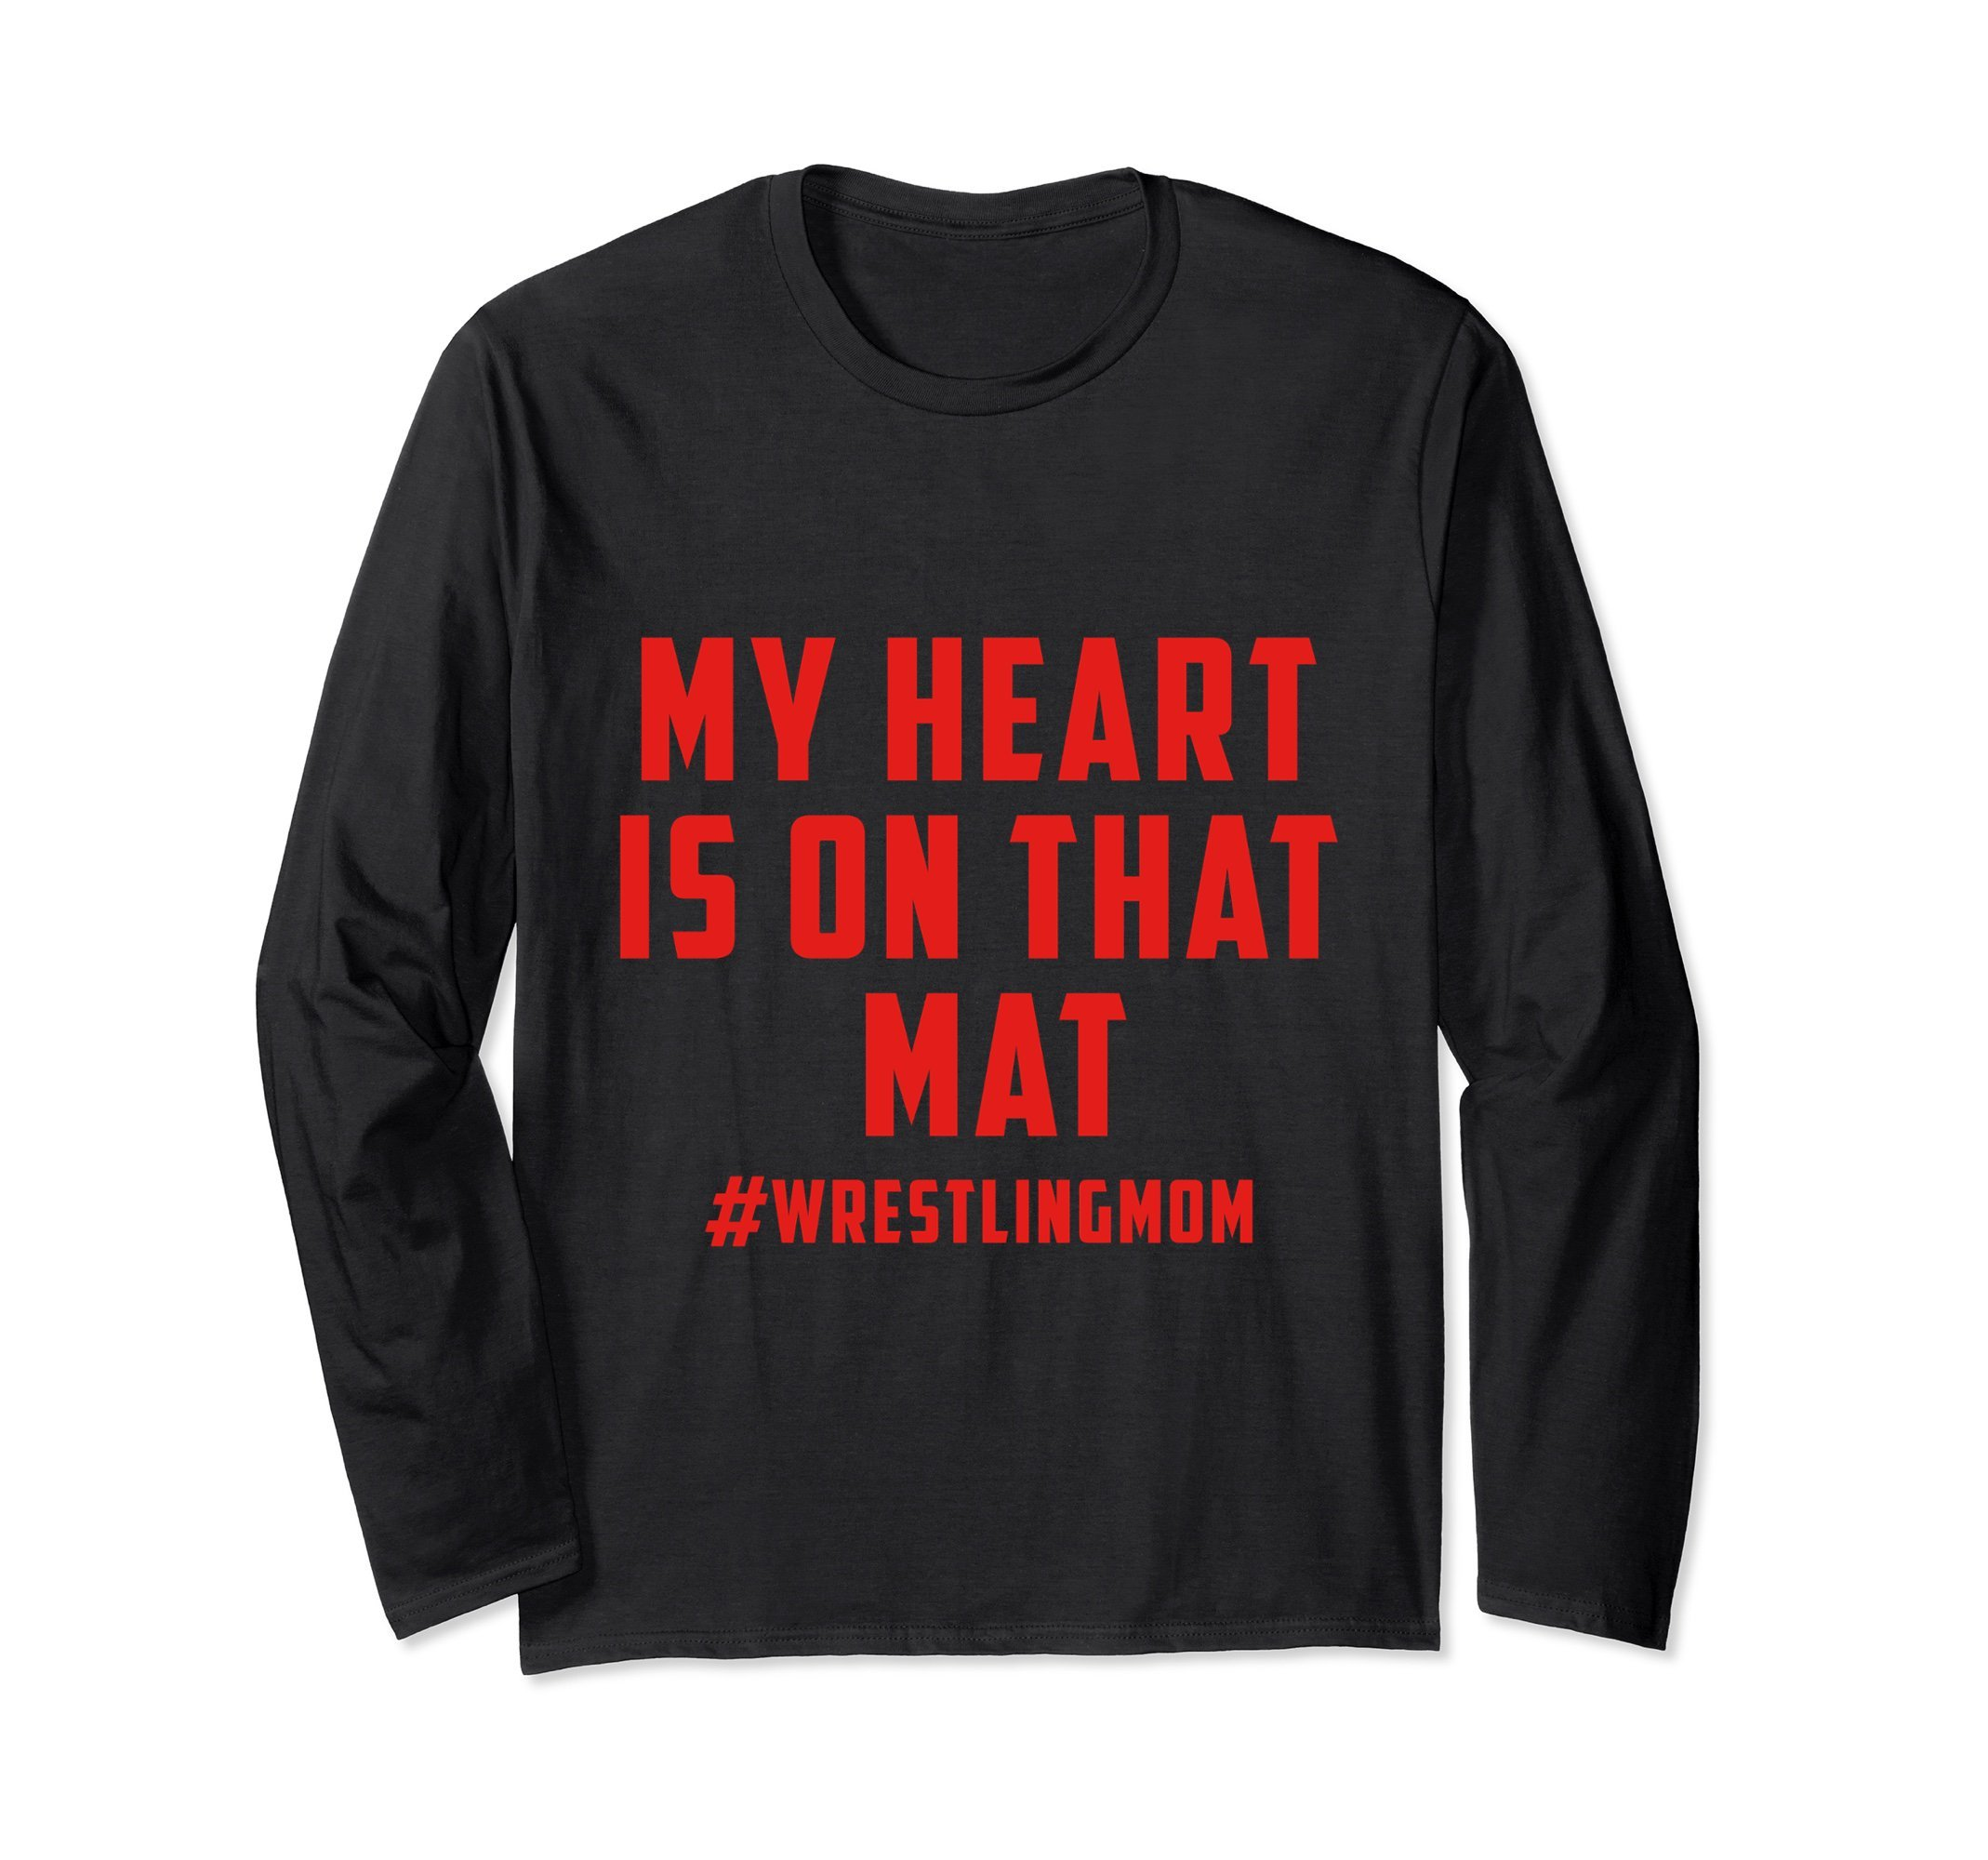 Unisex My Heart Is On That Mat Wrestling Mom Long Sleeve Shirt Small Black by My Heart Is On That Mat Long Sleeve Shirt